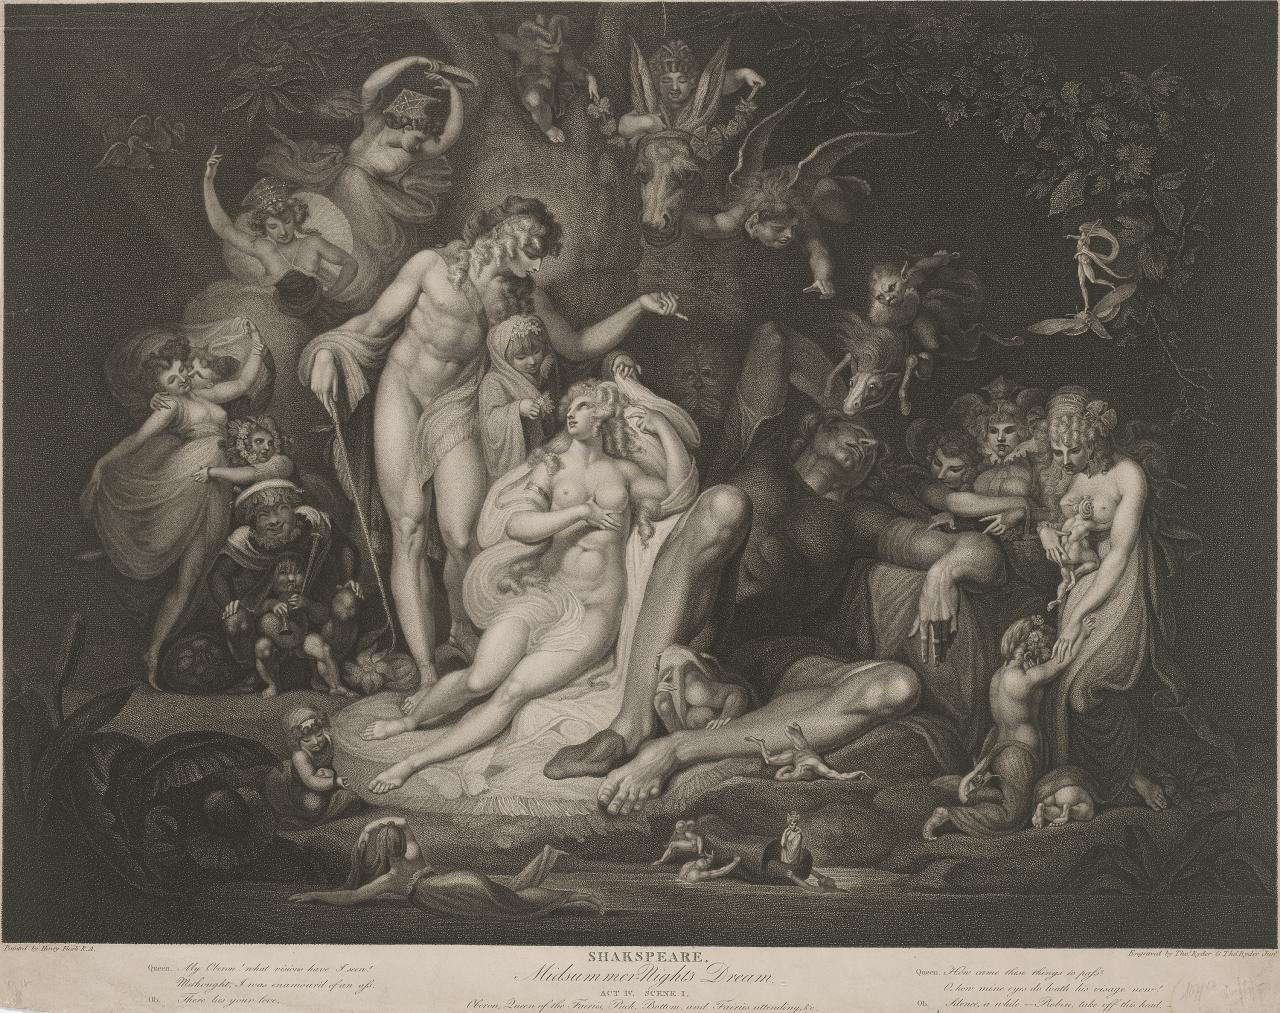 Midsummer Night's Dream: Act IV, scene 1